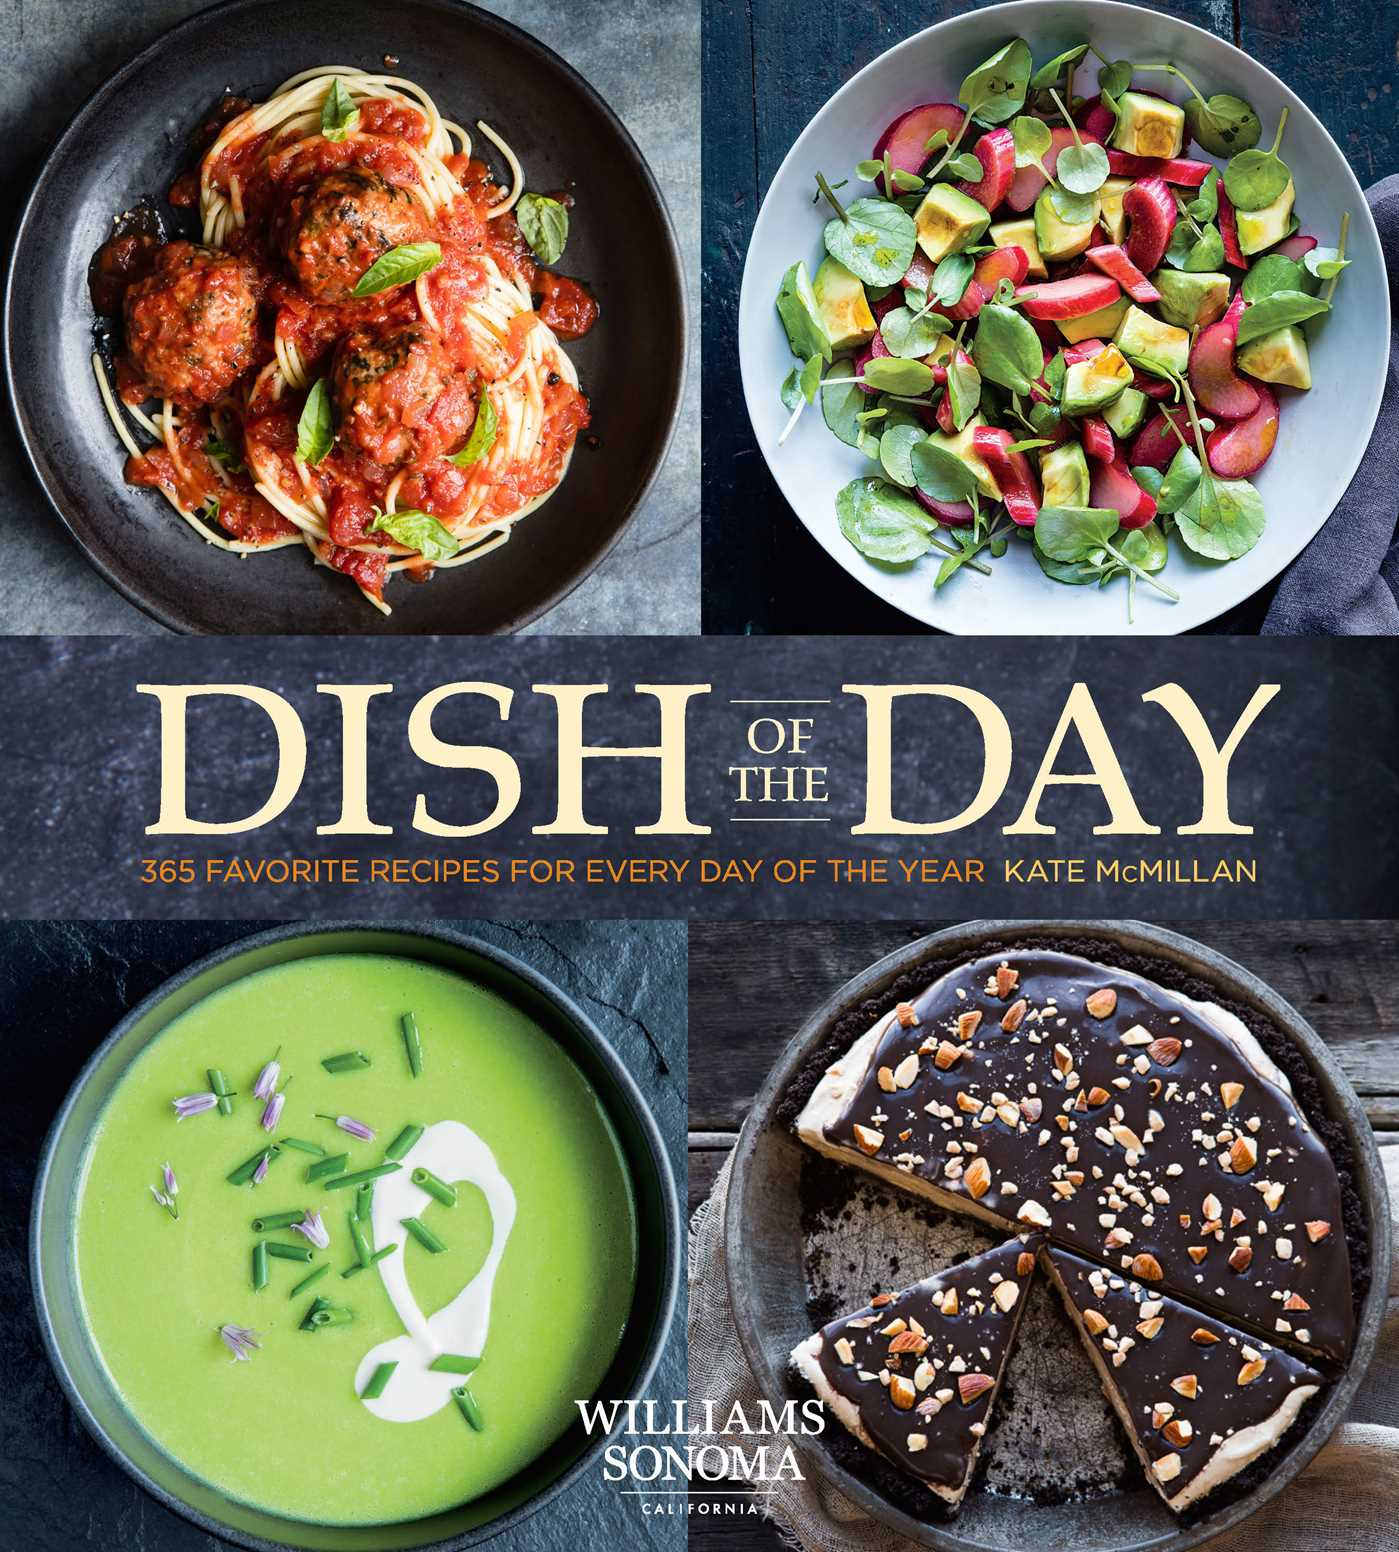 Dish of the day williams sonoma 9781681882437 hr